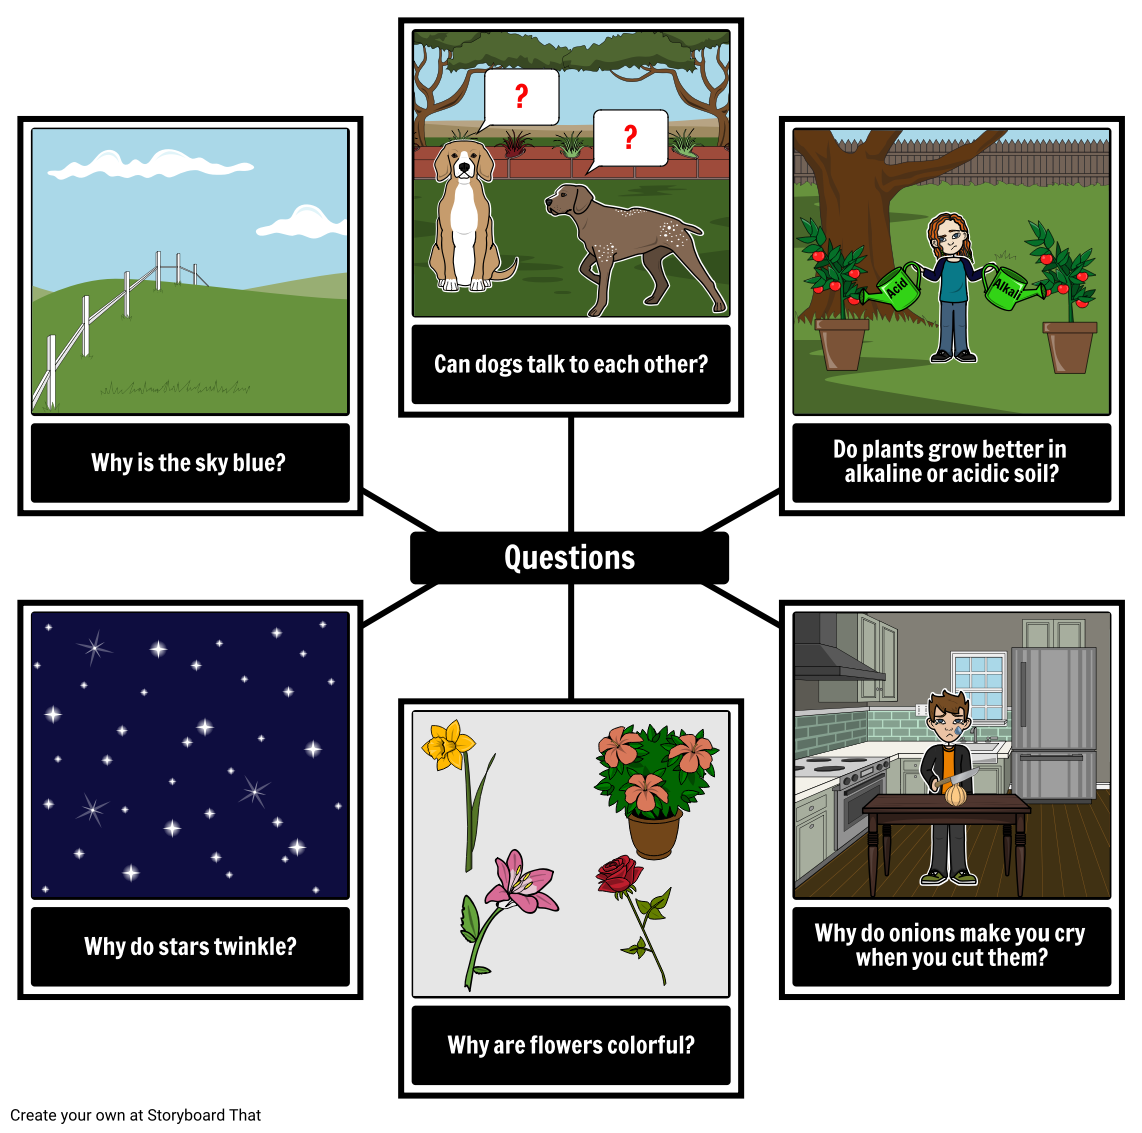 Scientific Method Steps The Second Step Of The Scientific Method Is To Ask Questions One Of The Scientific Method Steps Scientific Method Inquiry Activities